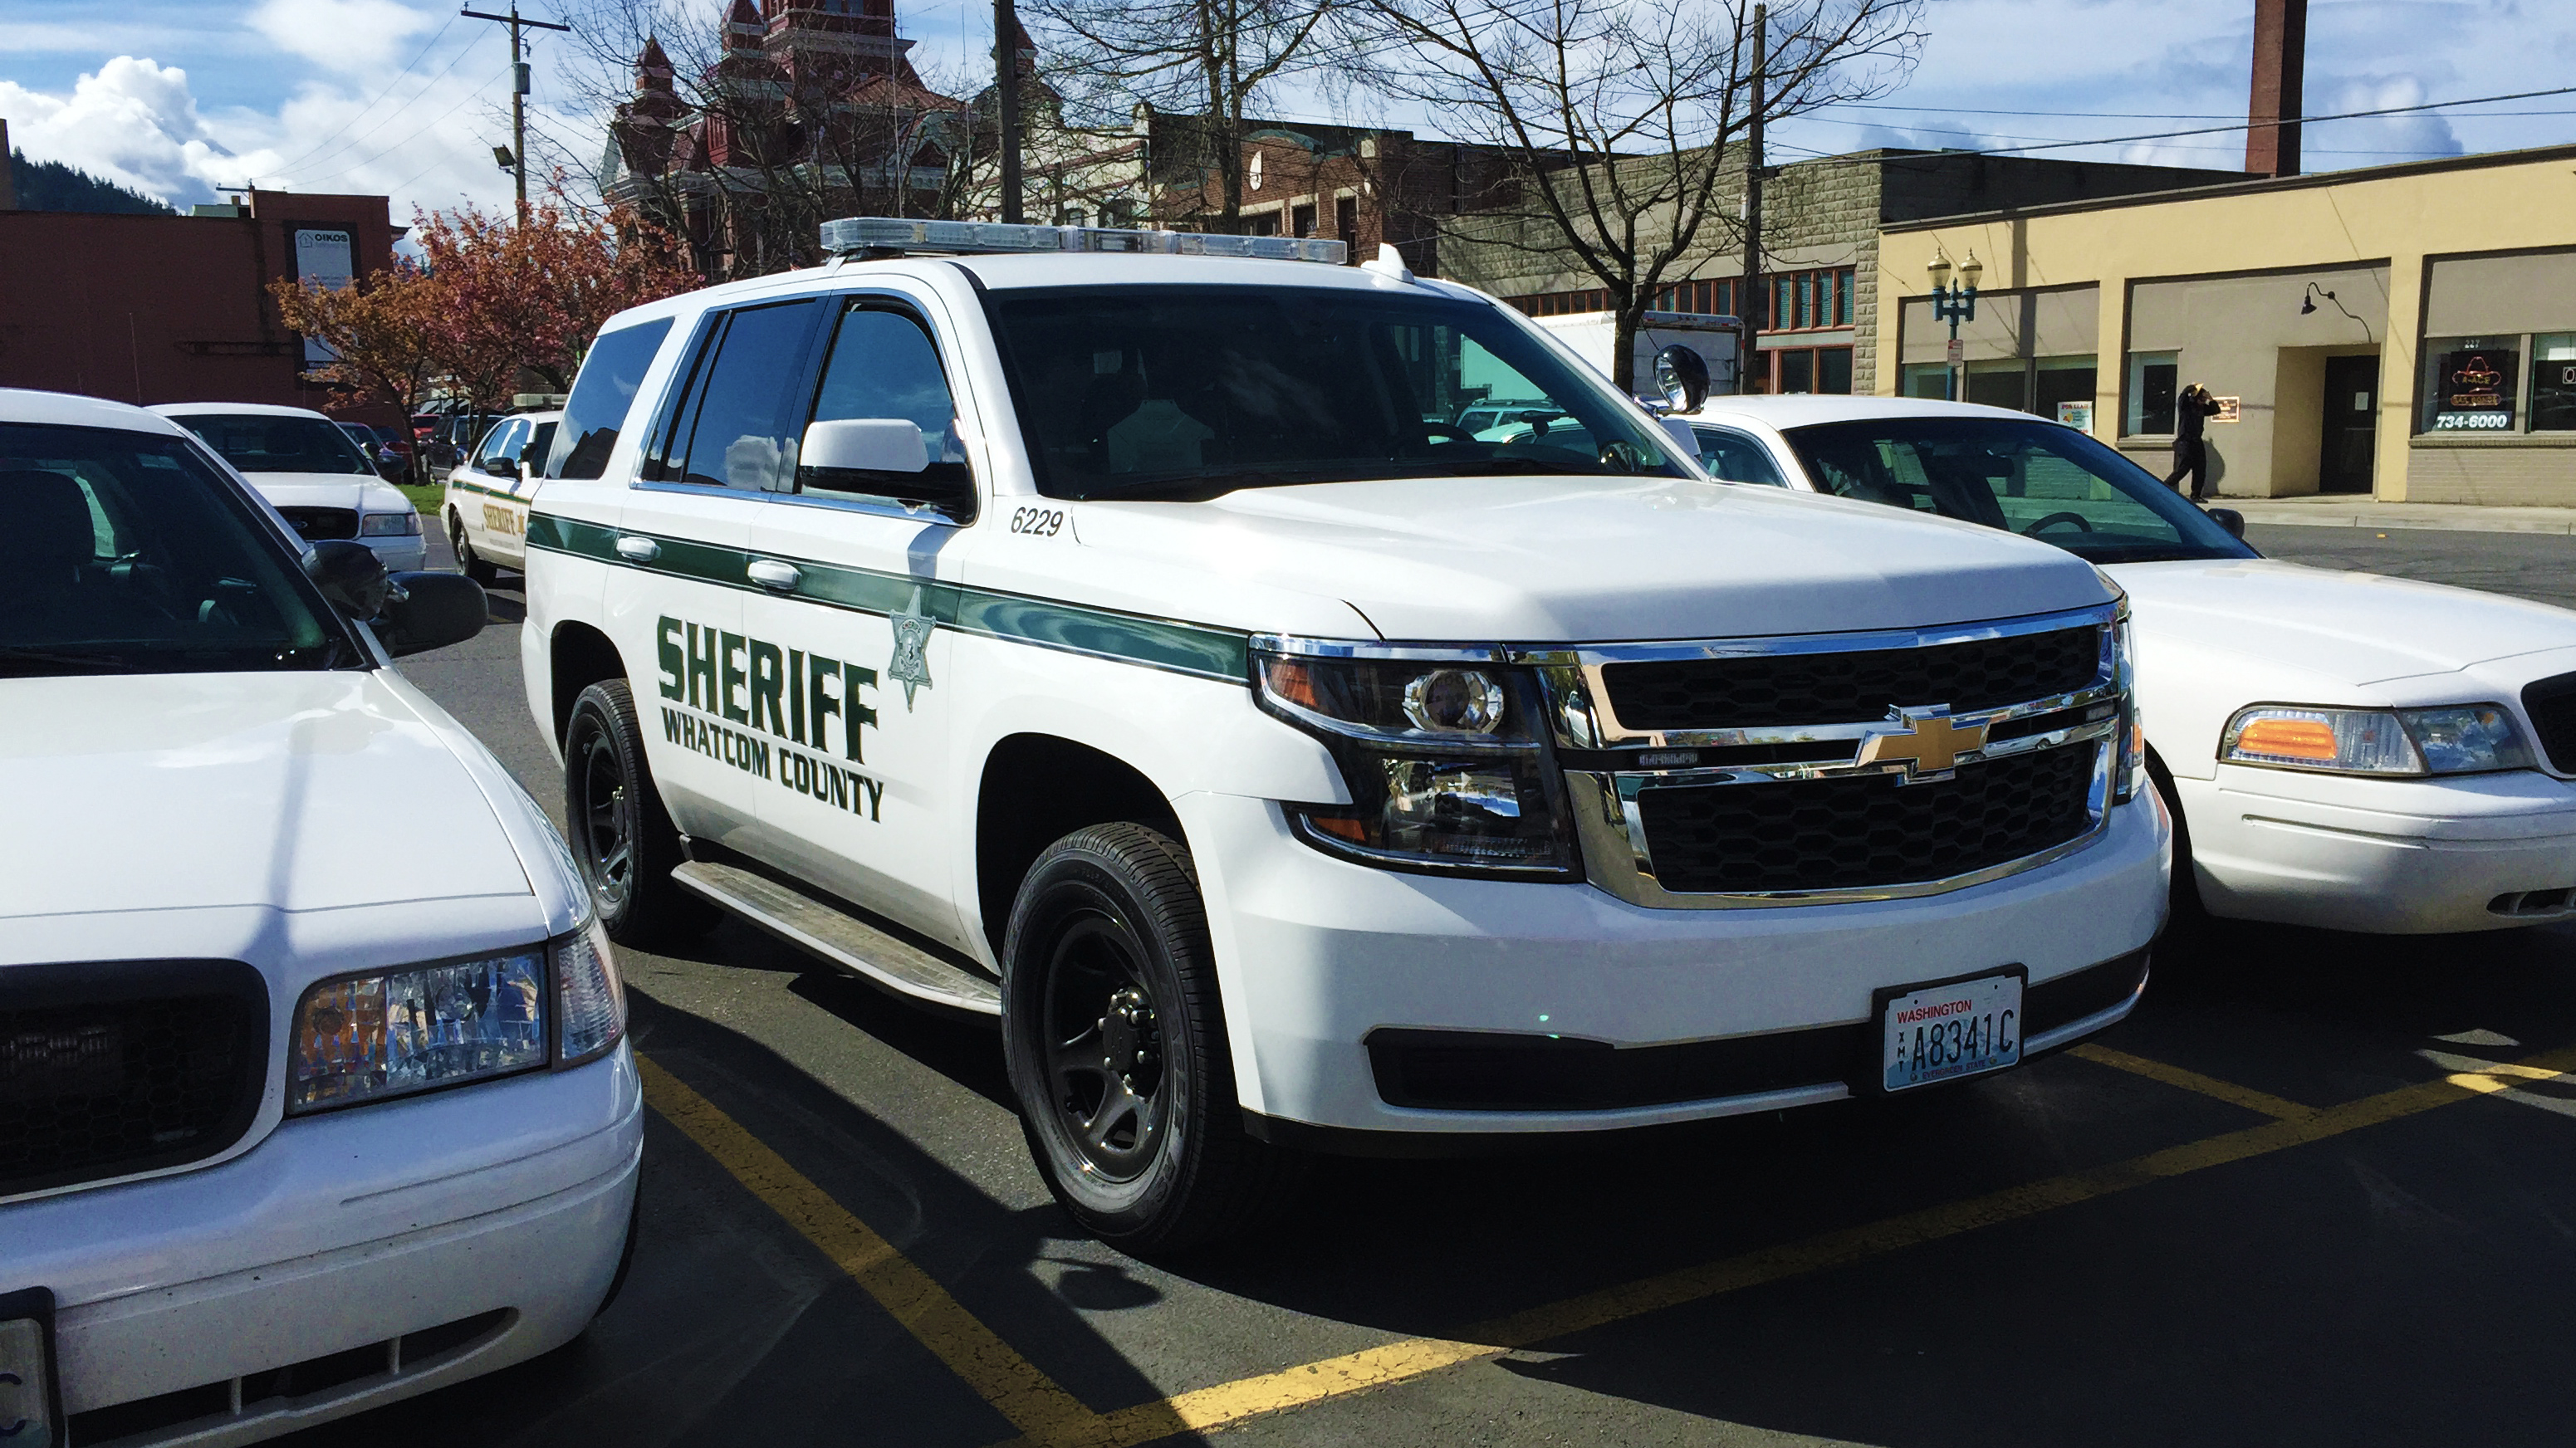 2015 chevy tahoe: whatcom county sheriff's office photo